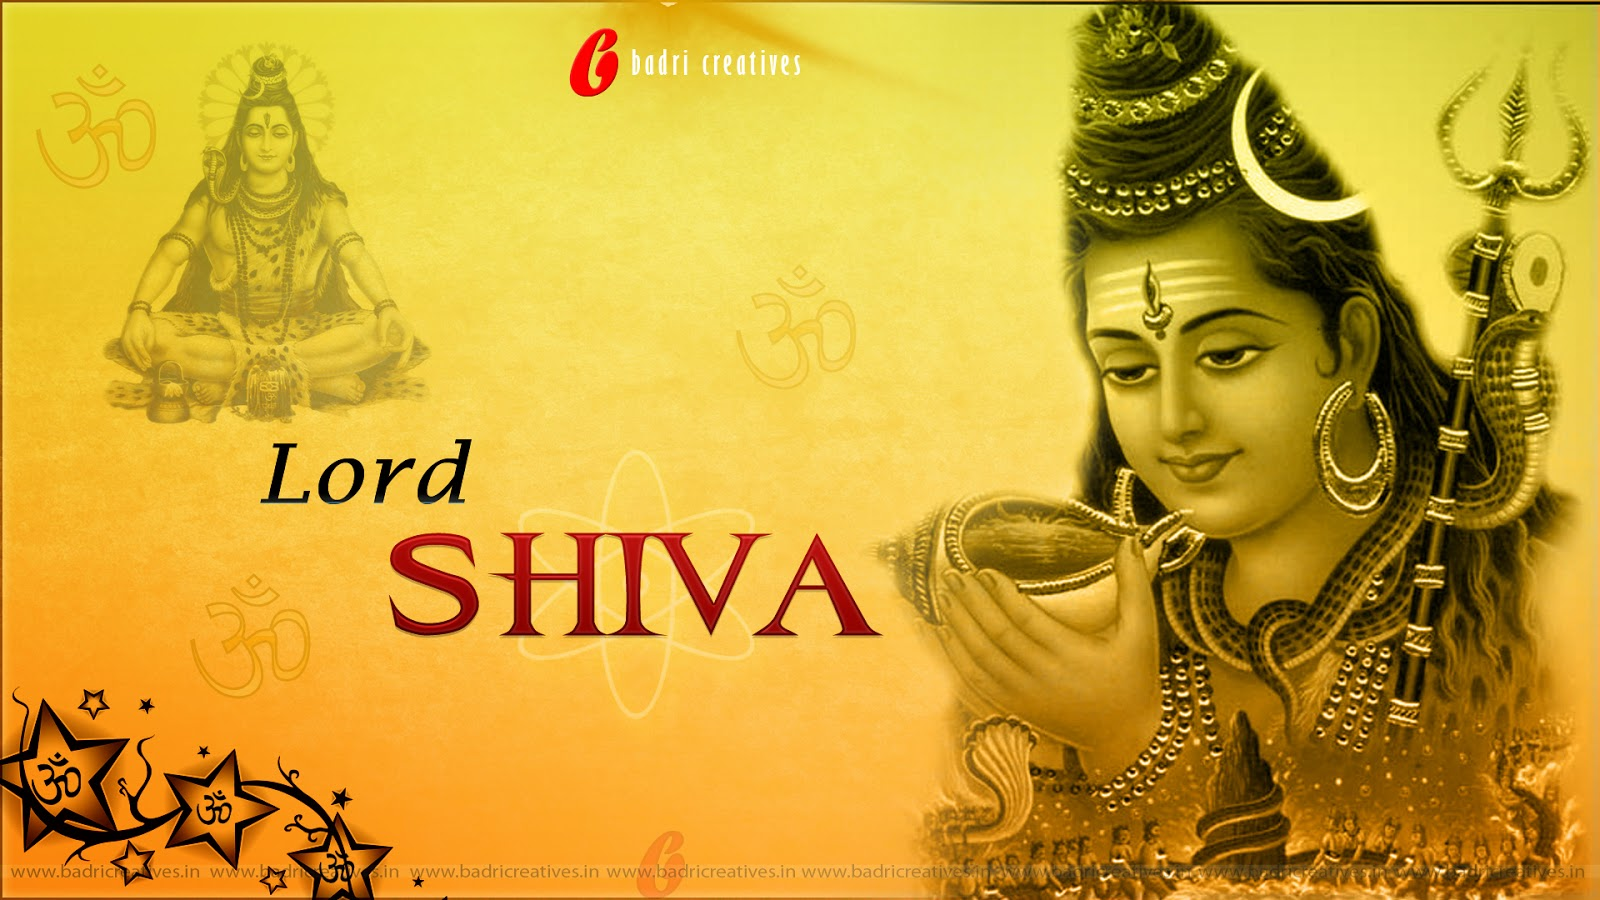 Lord Shiva HD Wallpaper Resolution 19201080 Format JPEG 1600x900